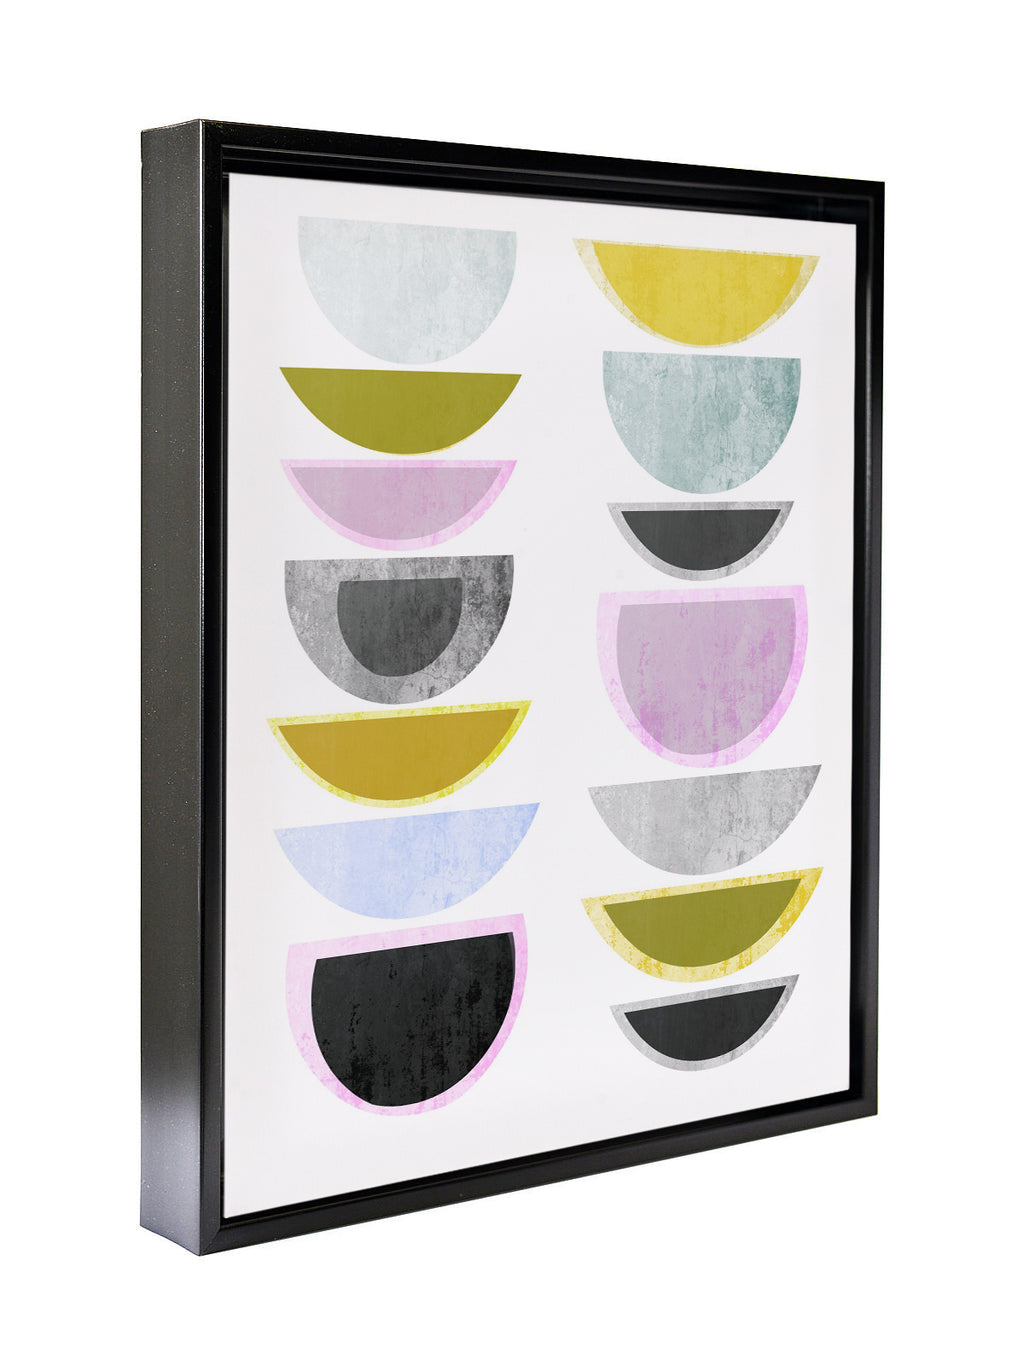 CUPS Premium Framed Gallery Wrap By Honeytree Prints